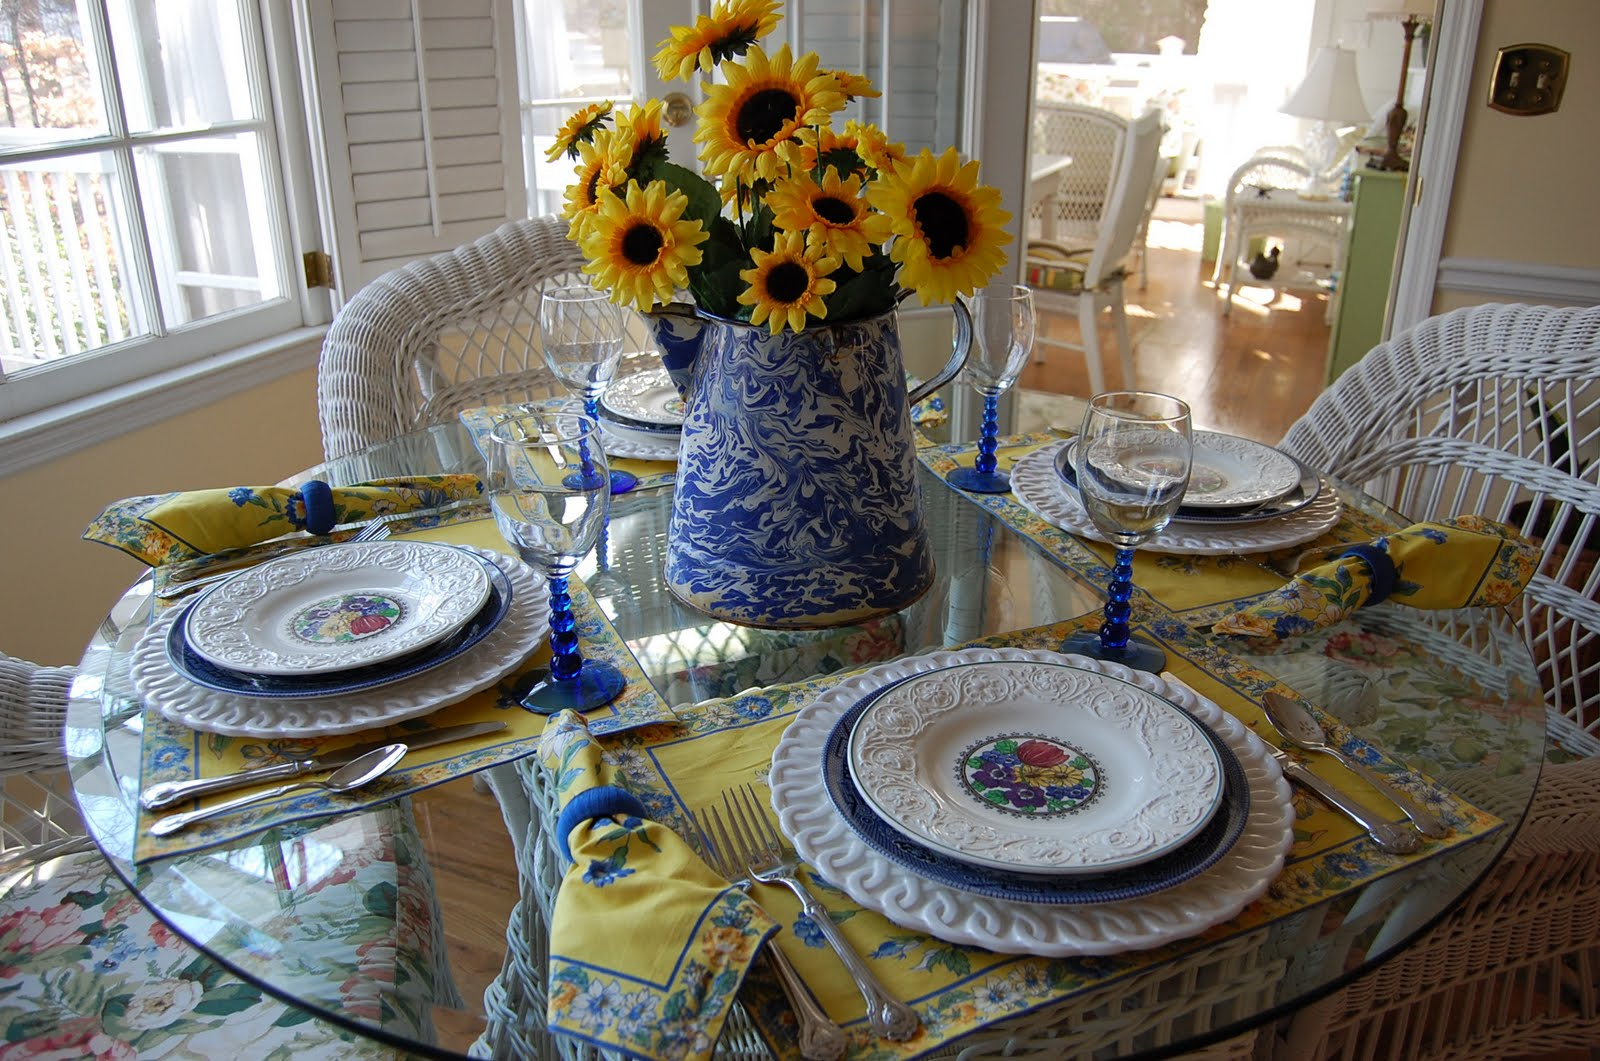 Spring Table Setting With Sunflower Centerpiece And